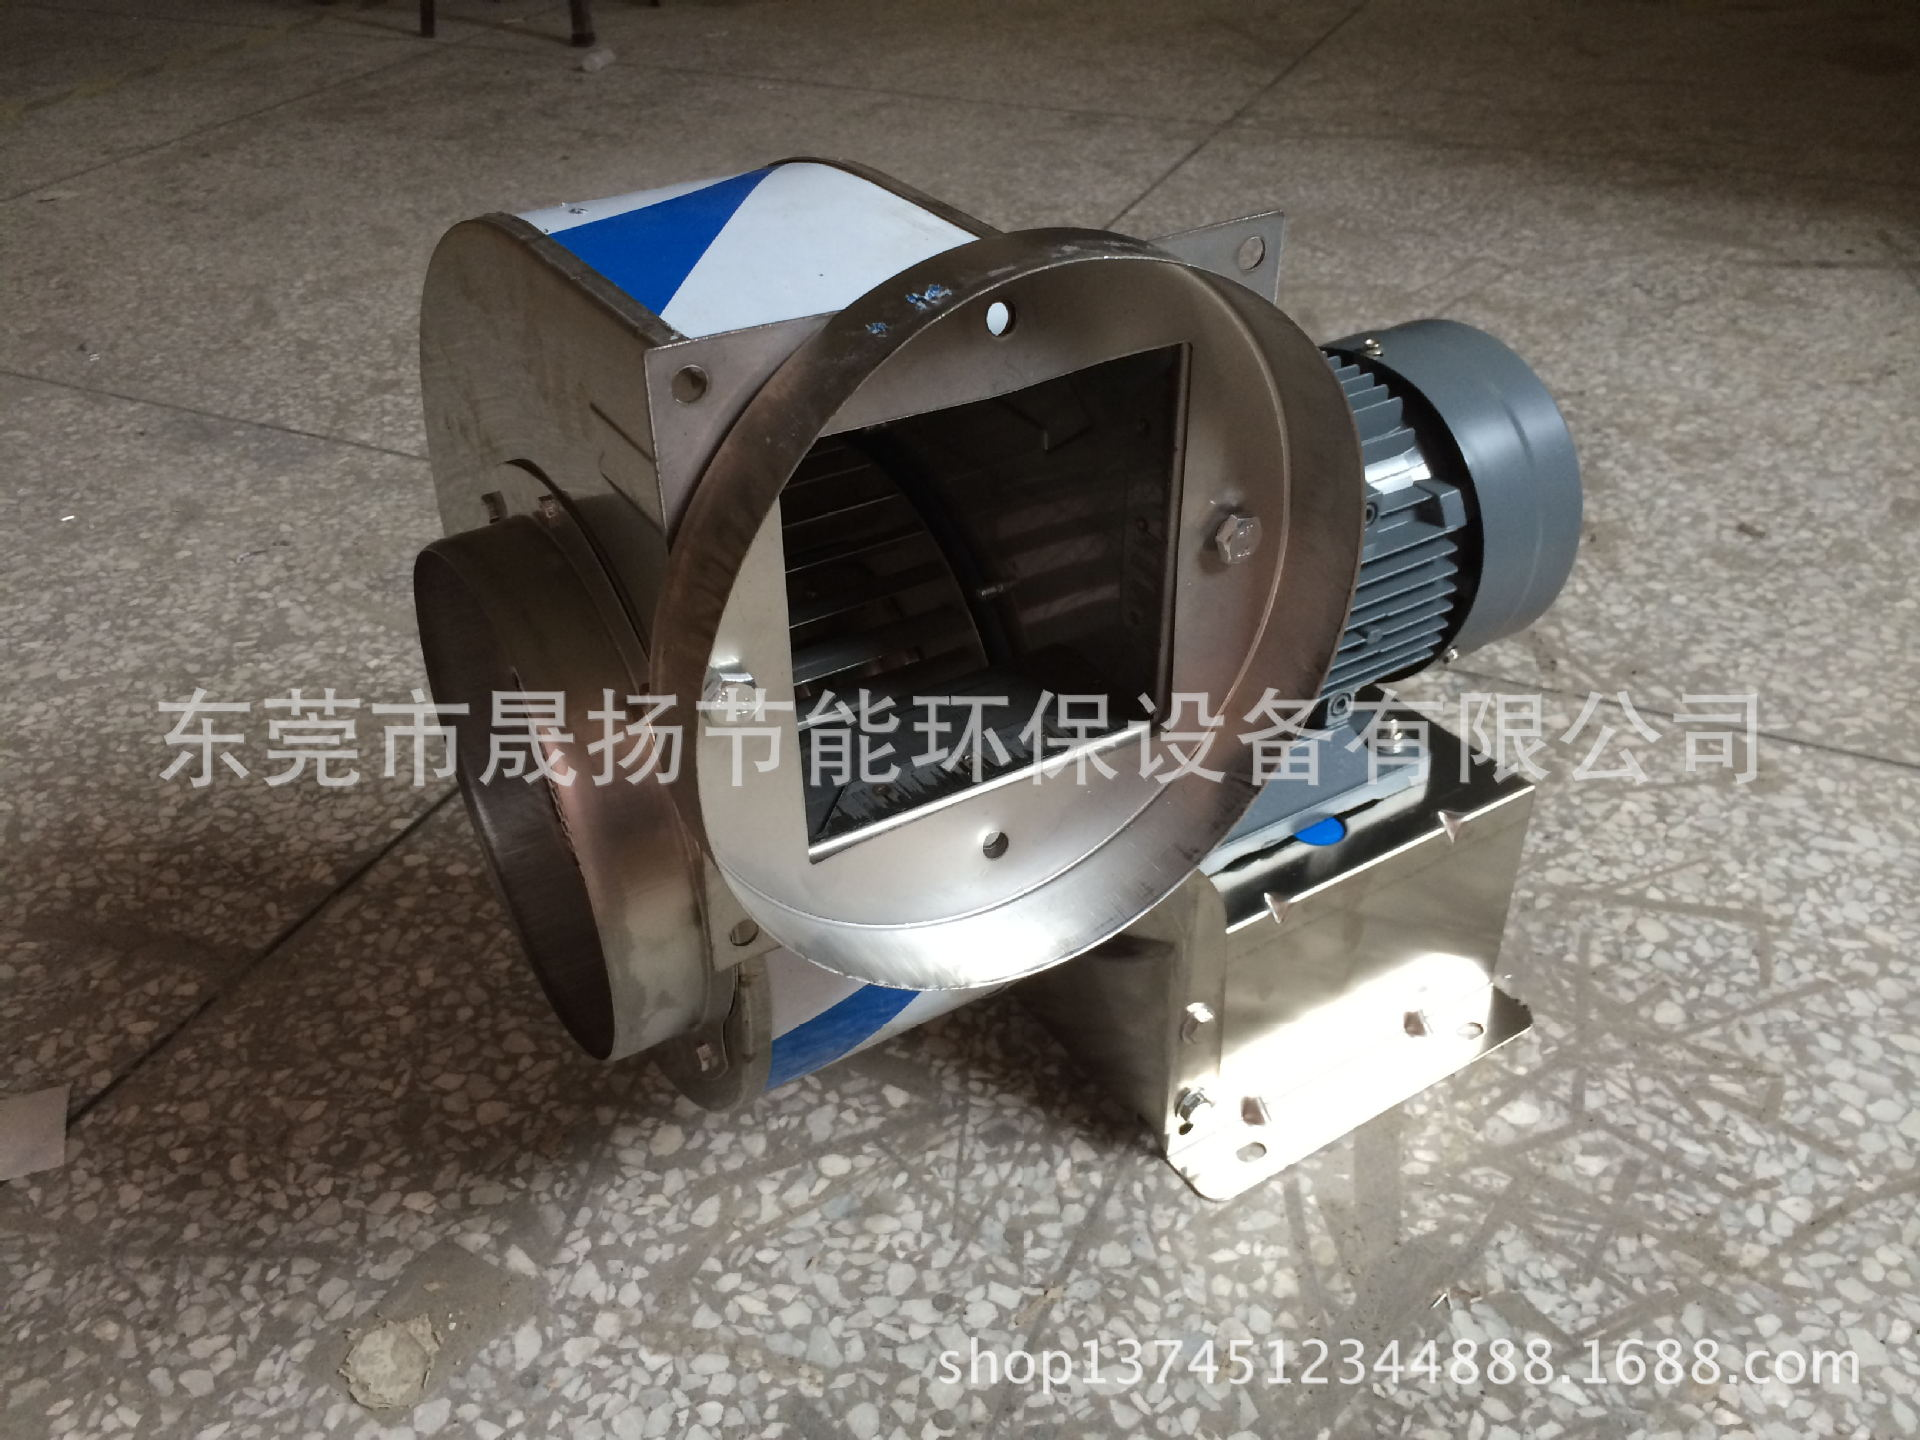 Quạt thông gió   Factory direct sales 304 stainless steel fan silent centrifugal fan high temperatu